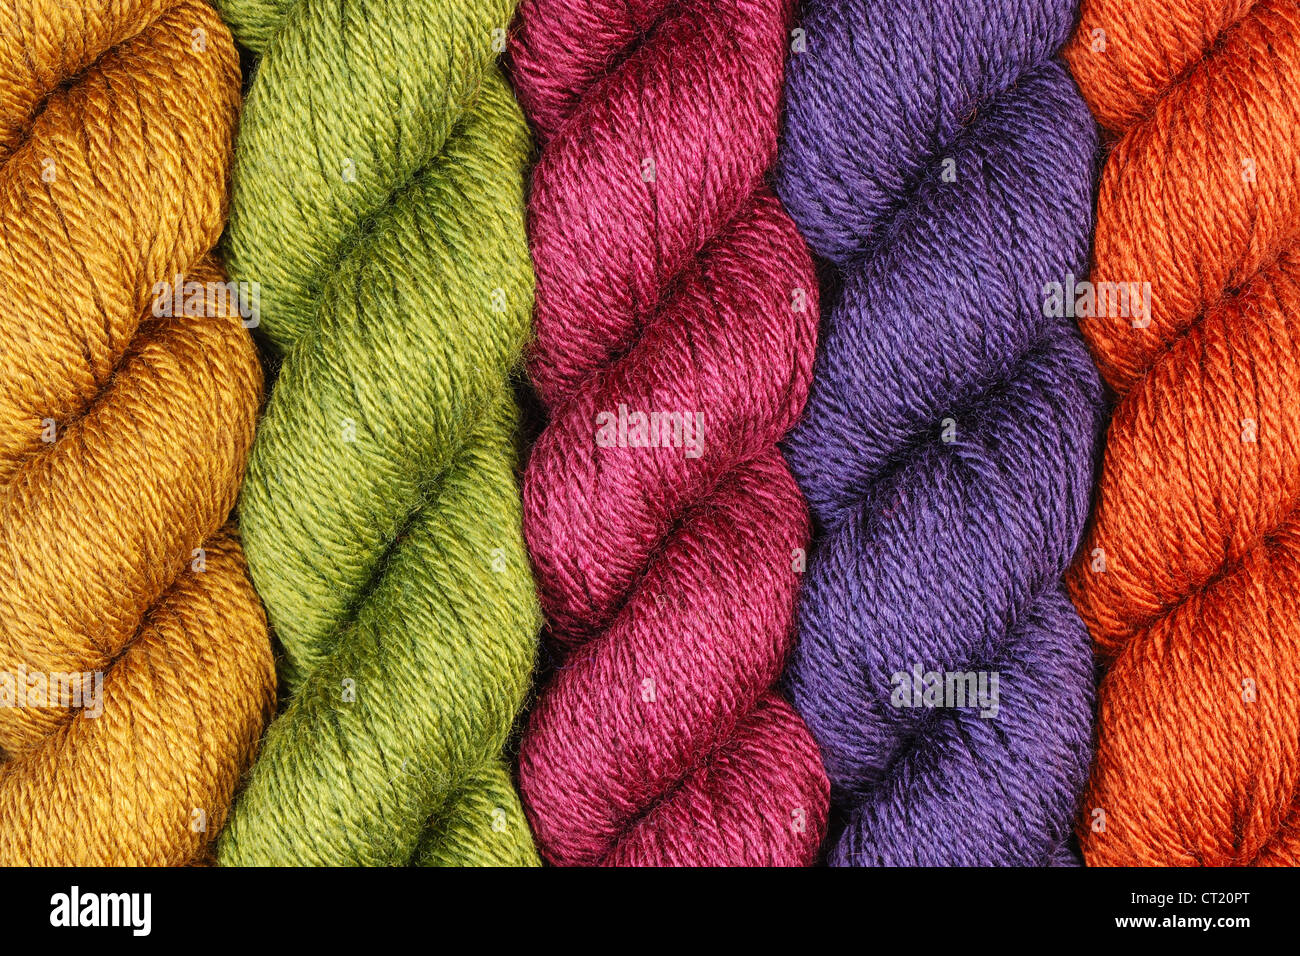 wool yarn twisted skeins for knitting - Stock Image